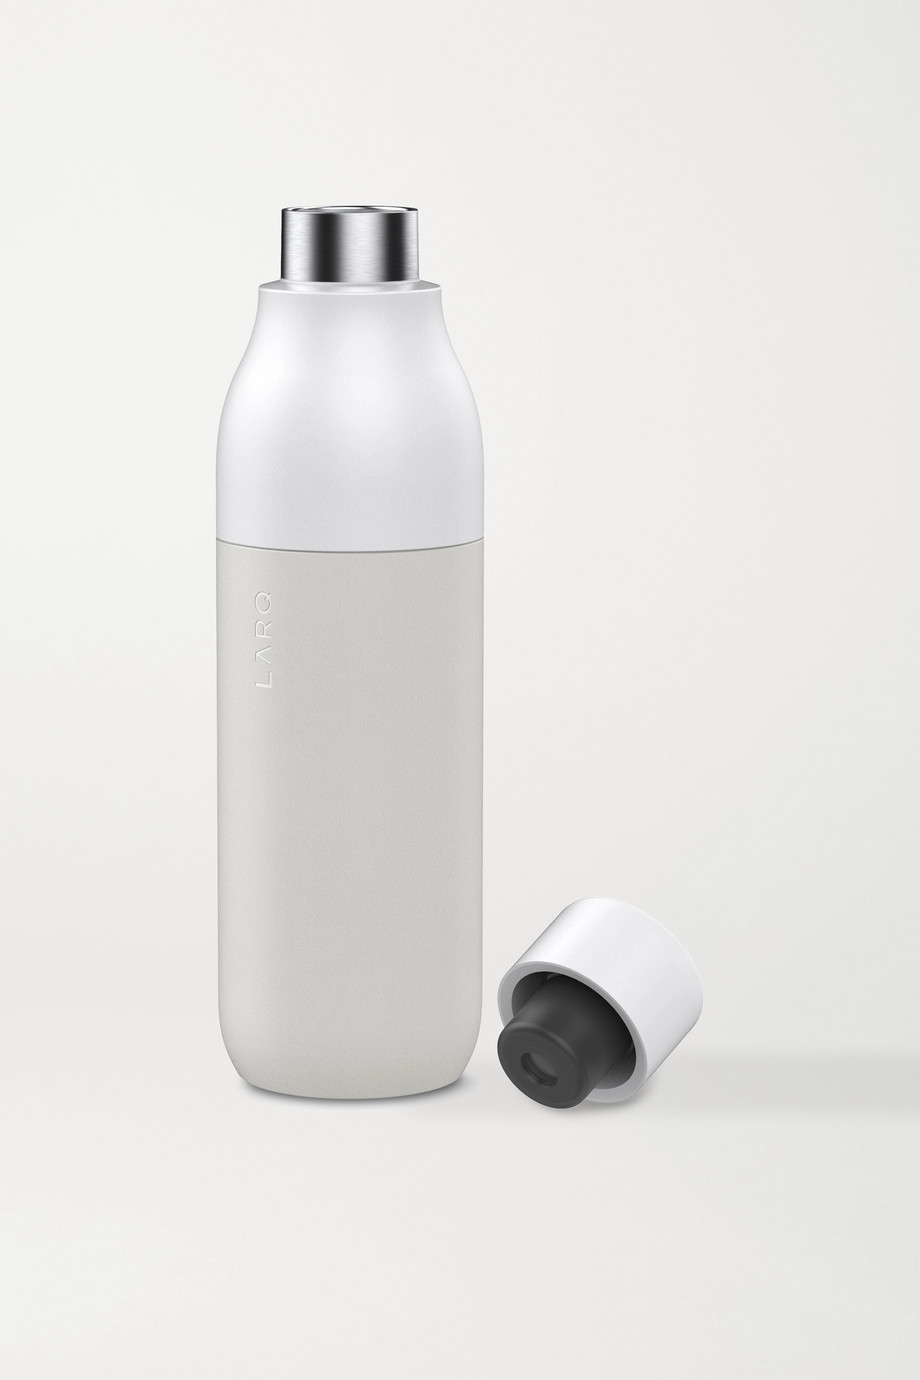 LARQ LARQ Bottle - Granite White, 500ml